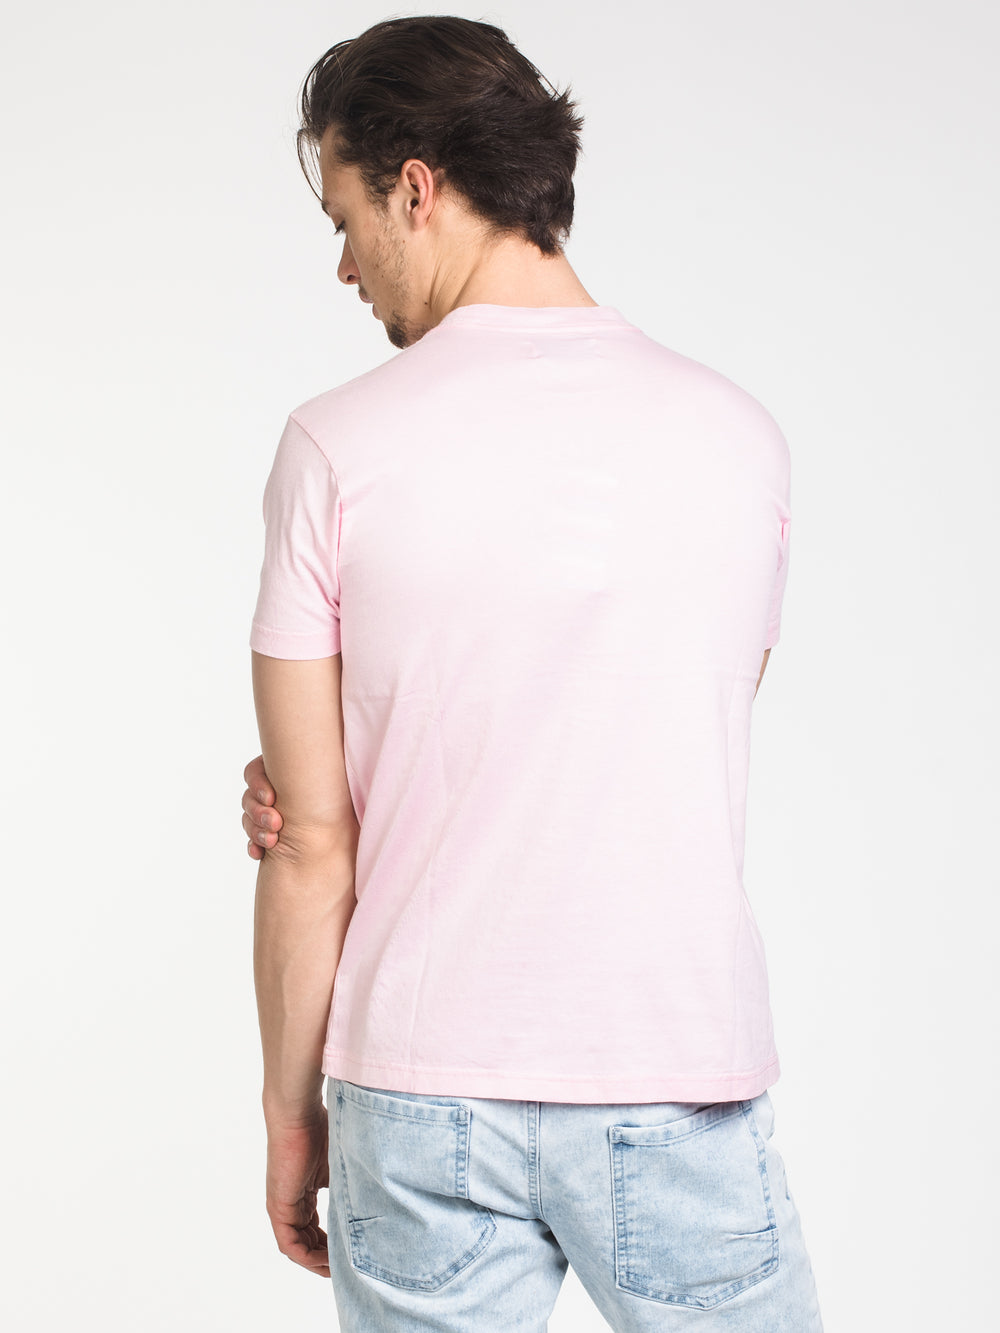 MENS 1 YEAR AGO SHORT SLEEVE T-SHIRT- LIGHT PINK